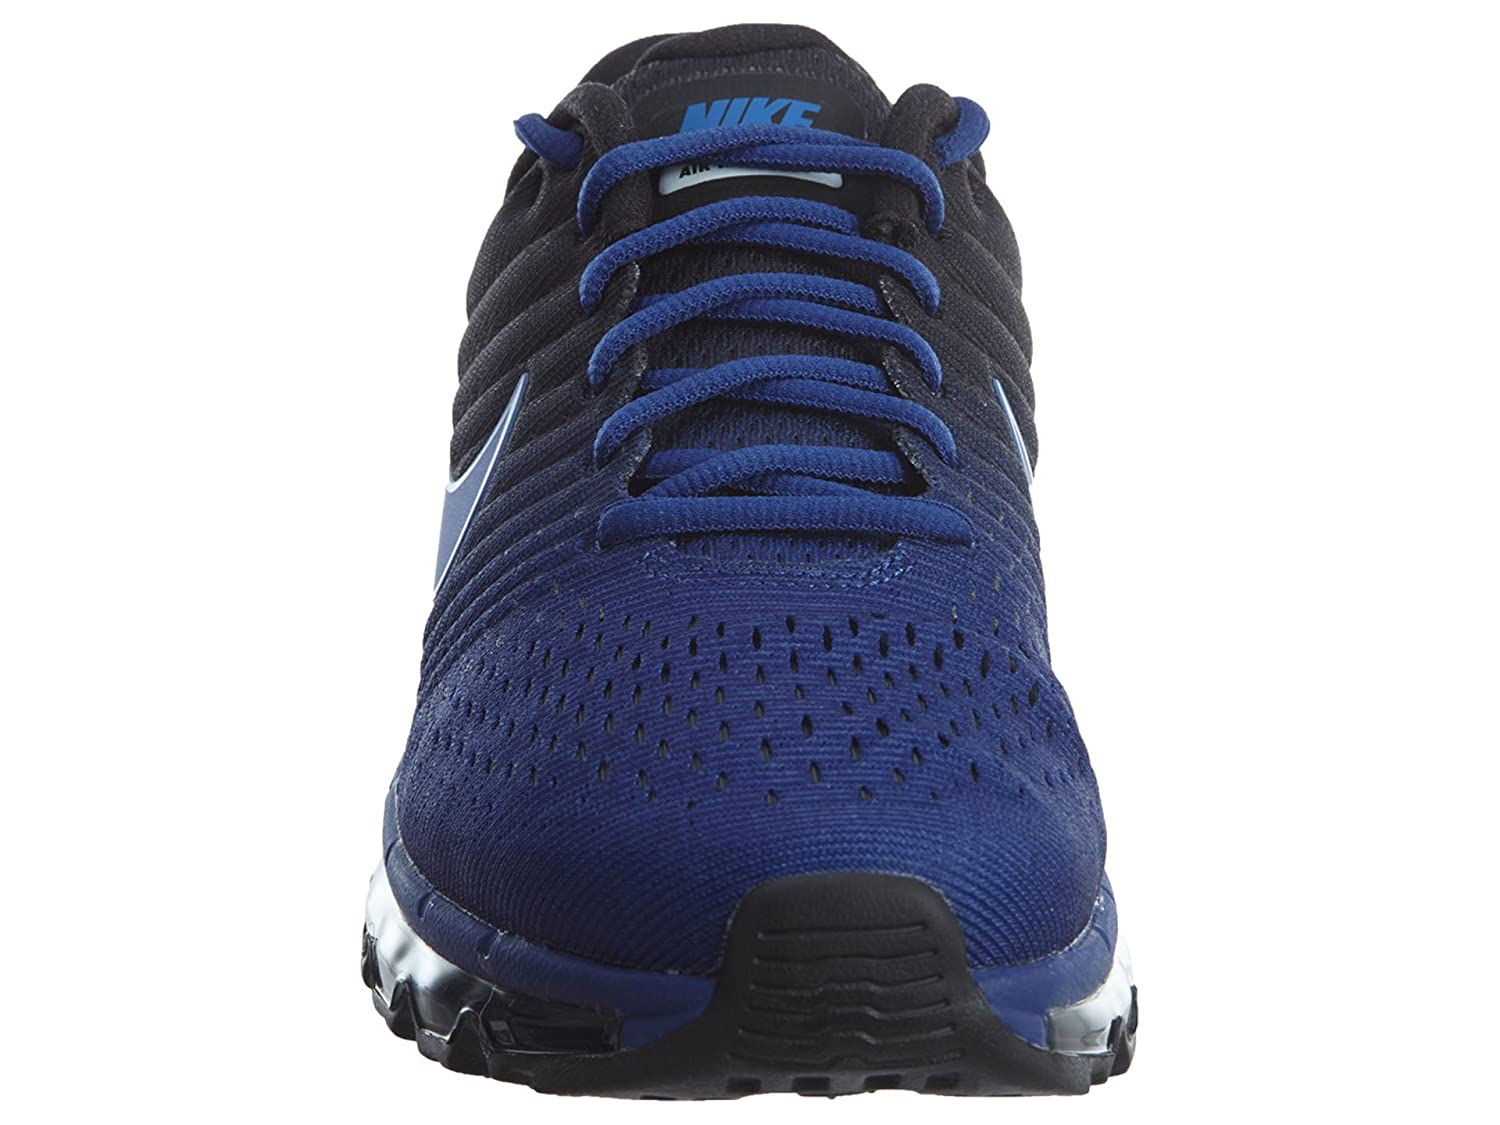 13d113715c Nike Men s Air Max 2017 Running Shoe Deep Royal Blue/Hyper Cobalt/Black 9  D(M) US: Buy Online at Low Prices in India - Amazon.in